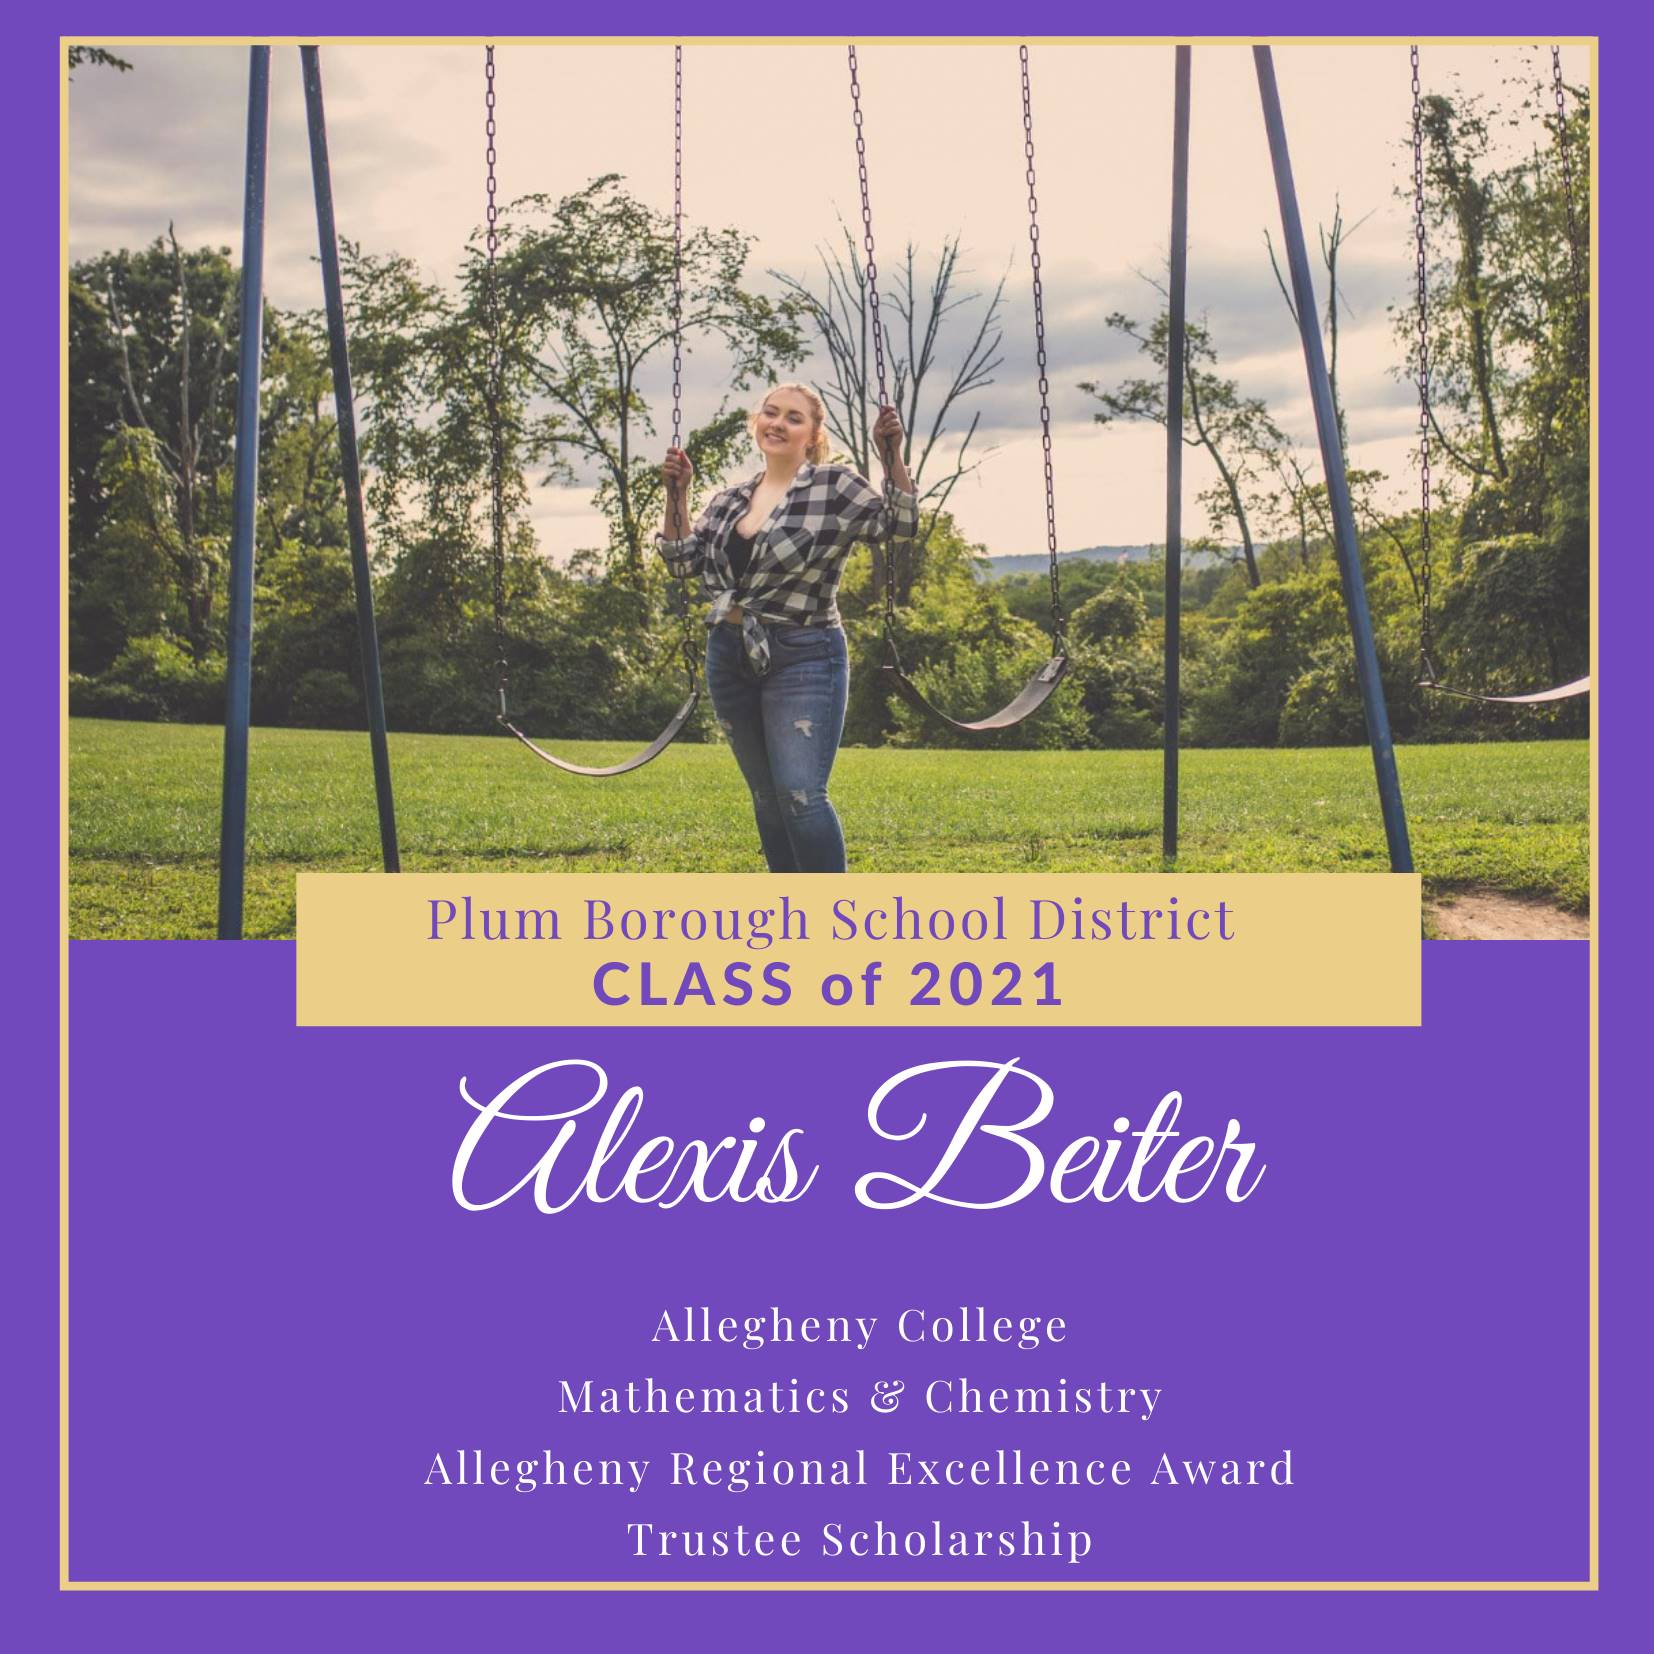 Congratulations to Alexis Beiter, Class of 2021!